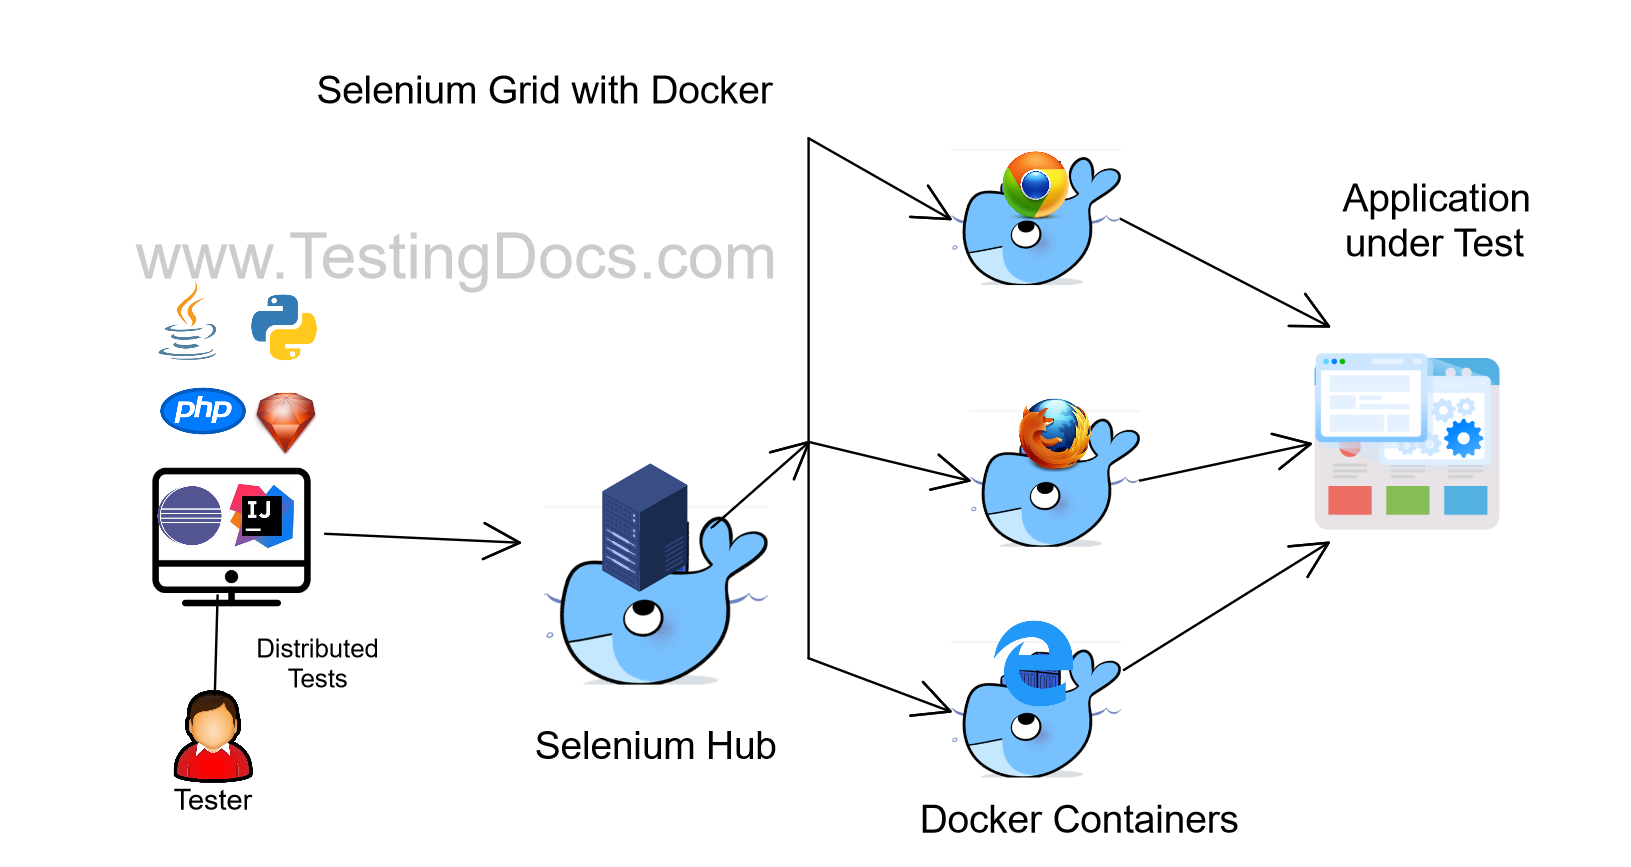 Selenium Grid with Docker Containers Illustration